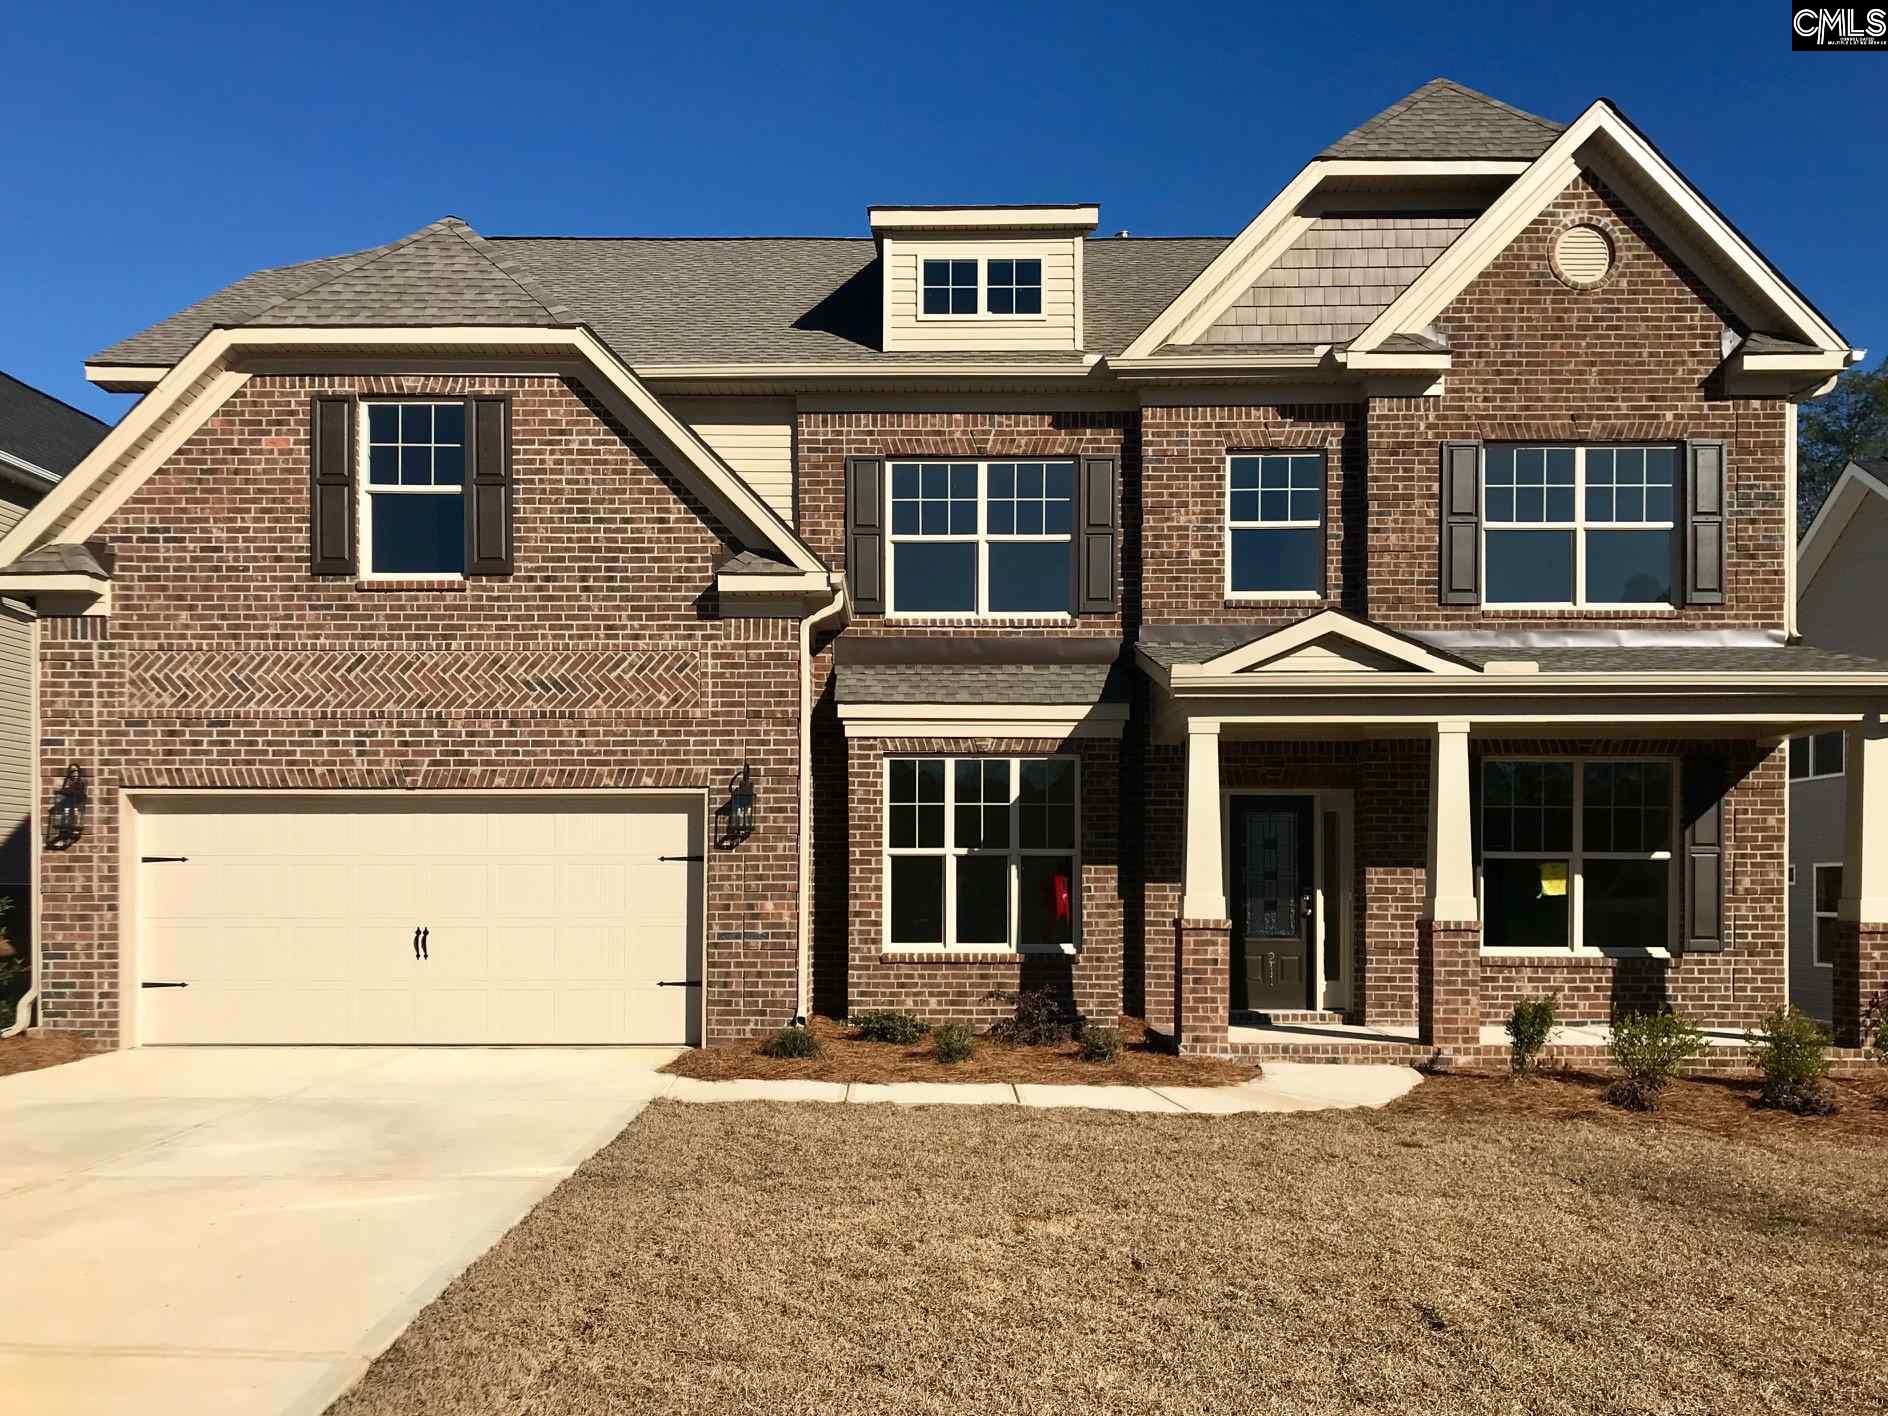 211 Chapin Brook Chapin, SC 29036